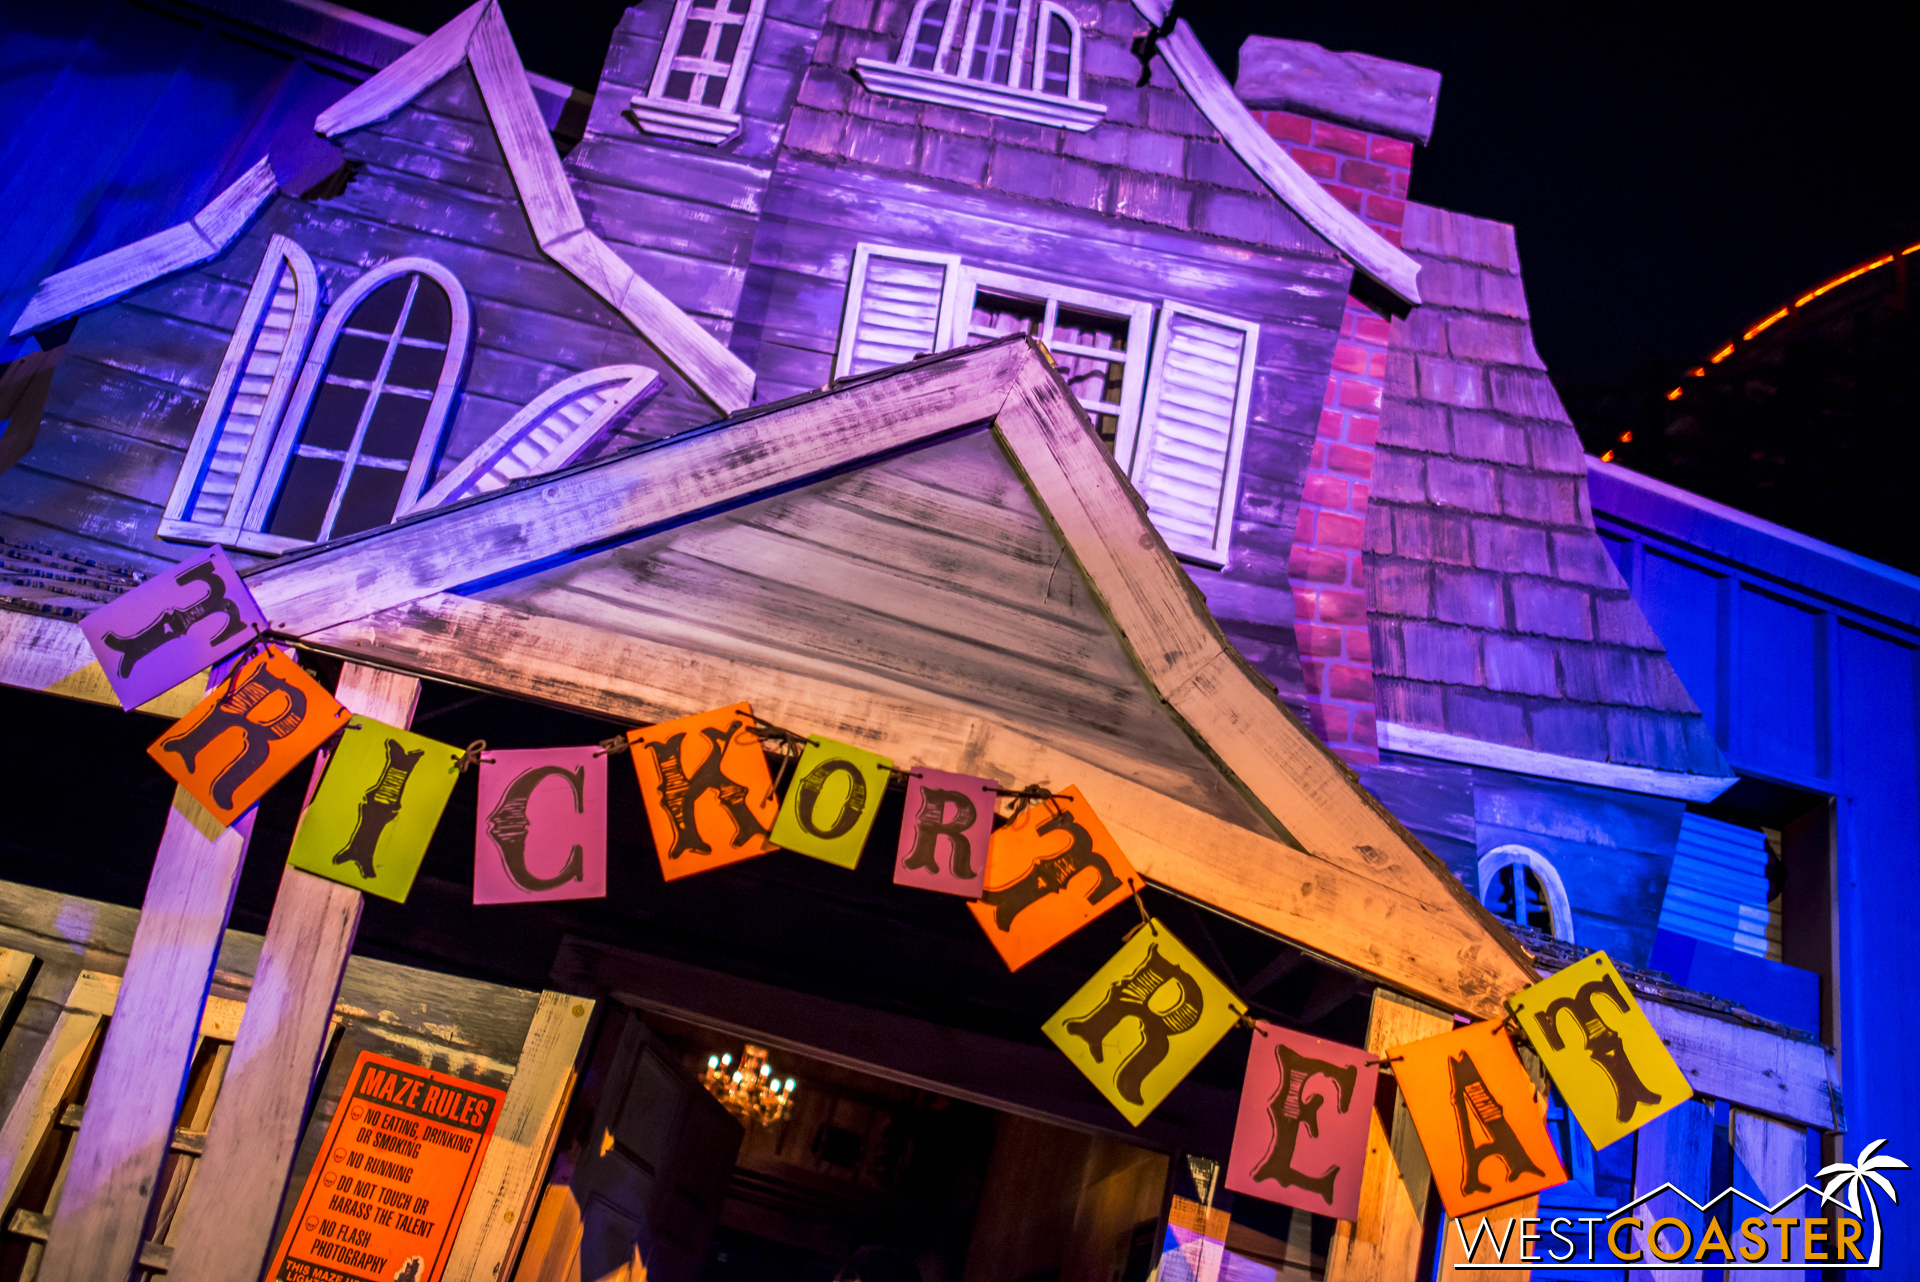 Trick or treat!! That now-classic facade is back for another year, which is great in my book.